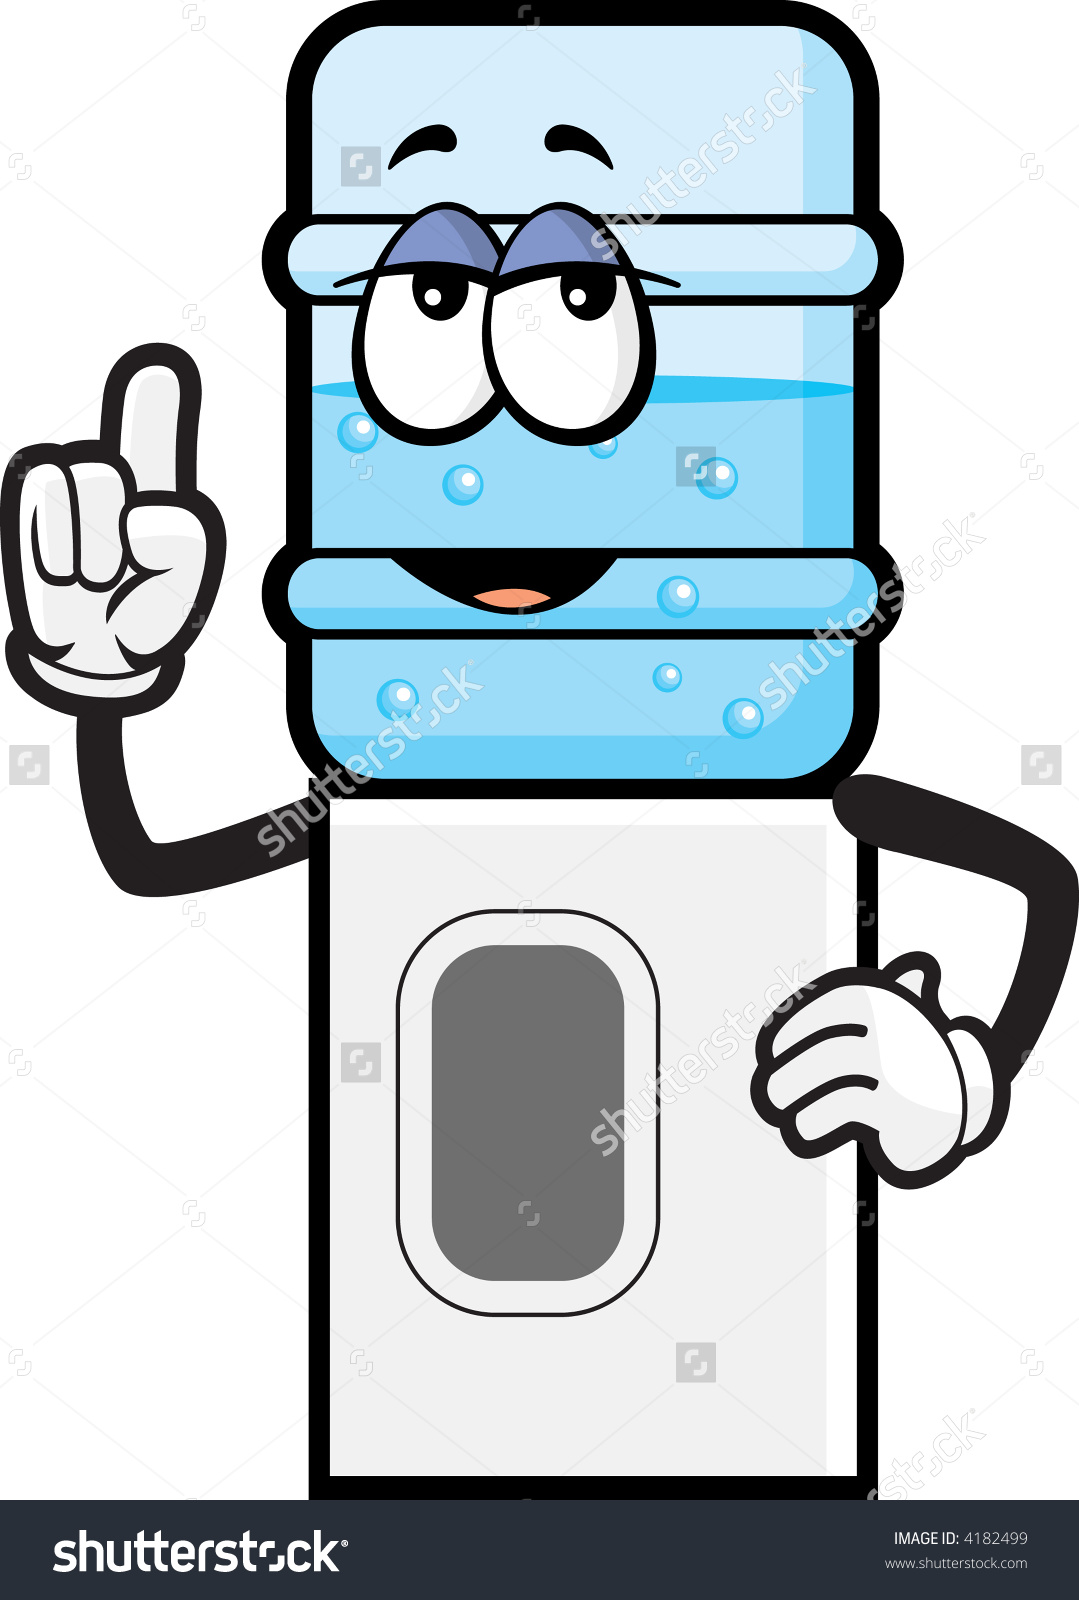 Water Cooler Clipart Images.